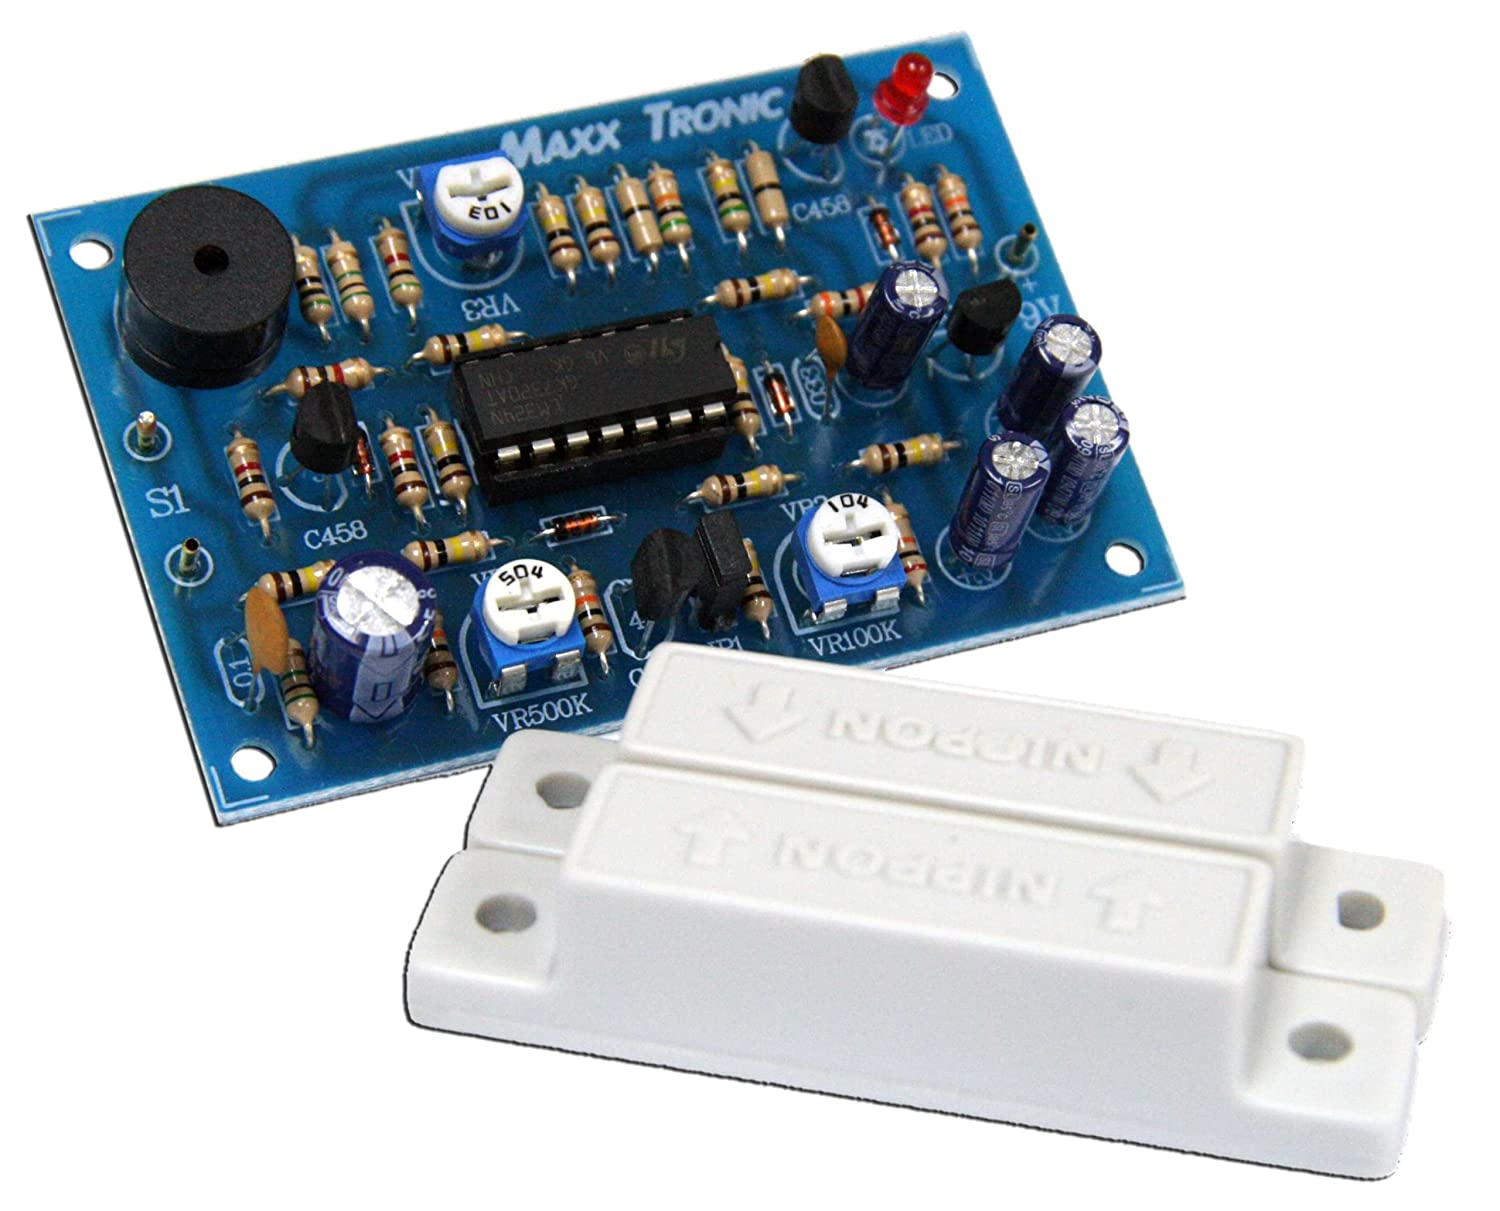 Door Windows Alarm With Time Delay 10 160seconds Refrigerator Circuit Assembled Kit 9 12vdc Mxa077 Everything Else